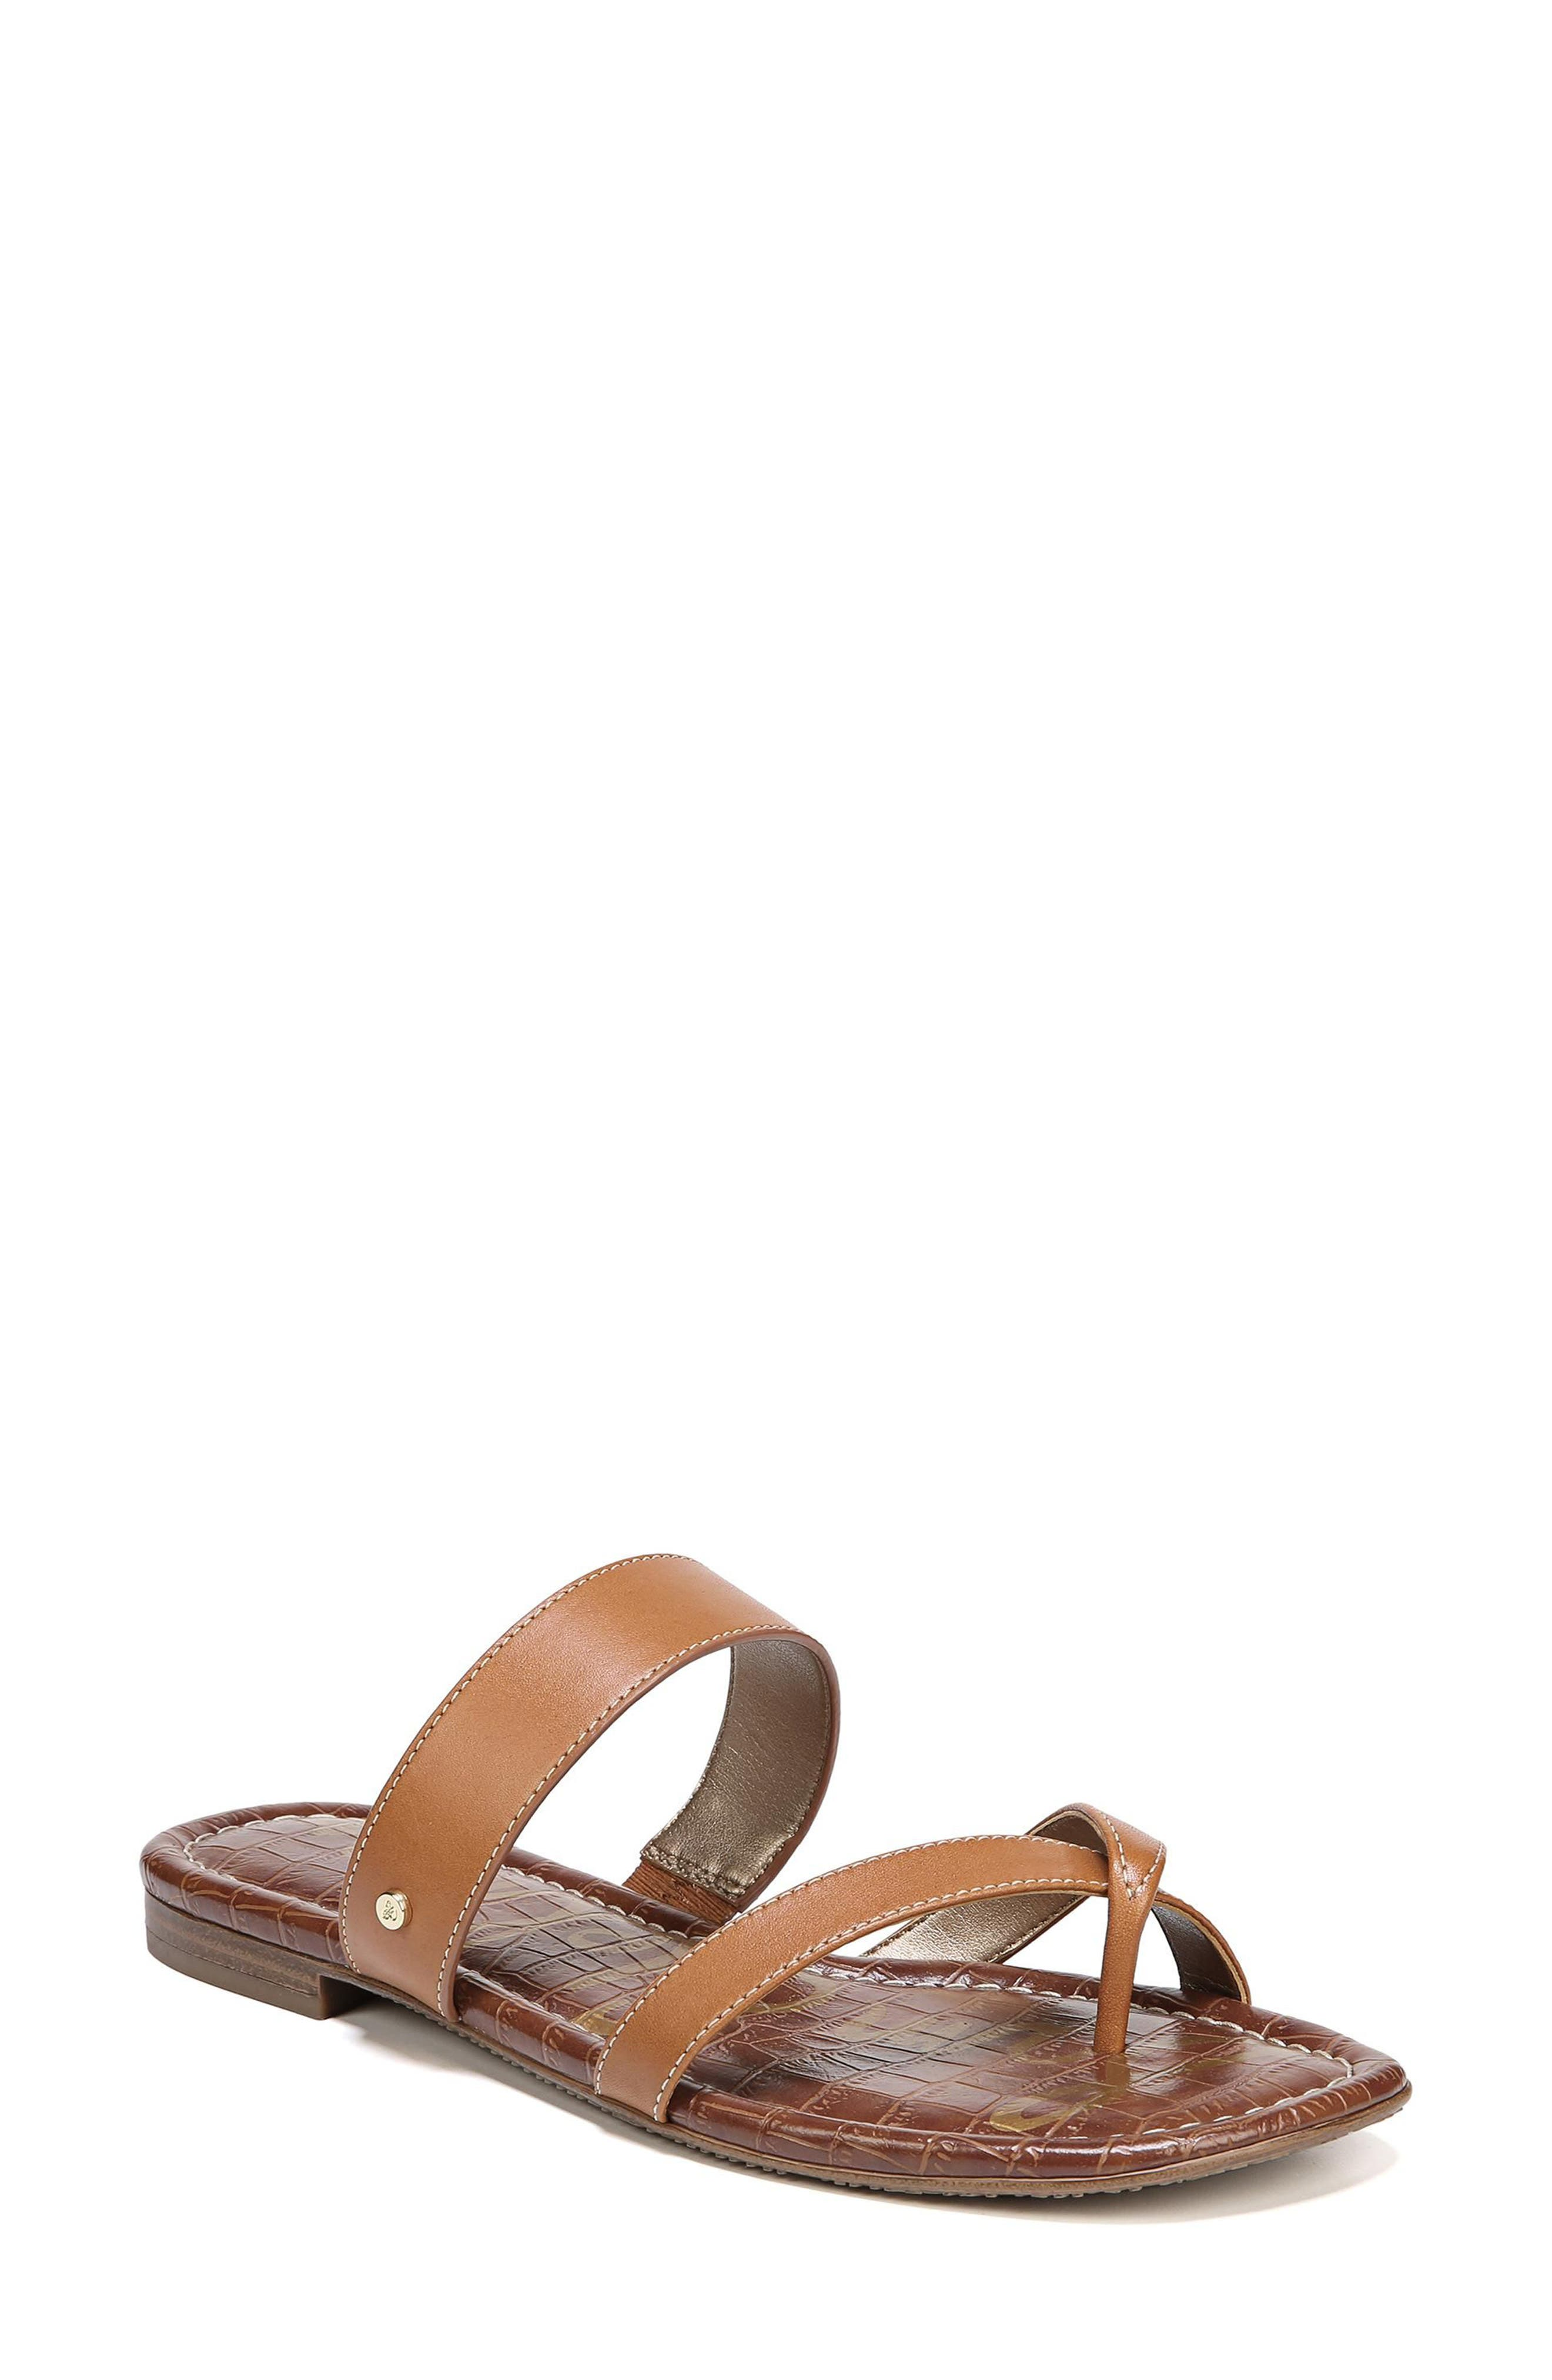 Sandals for Women On Sale, Black, Leather, 2017, 3.5 4.5 5.5 6 7.5 8.5 Michael Kors